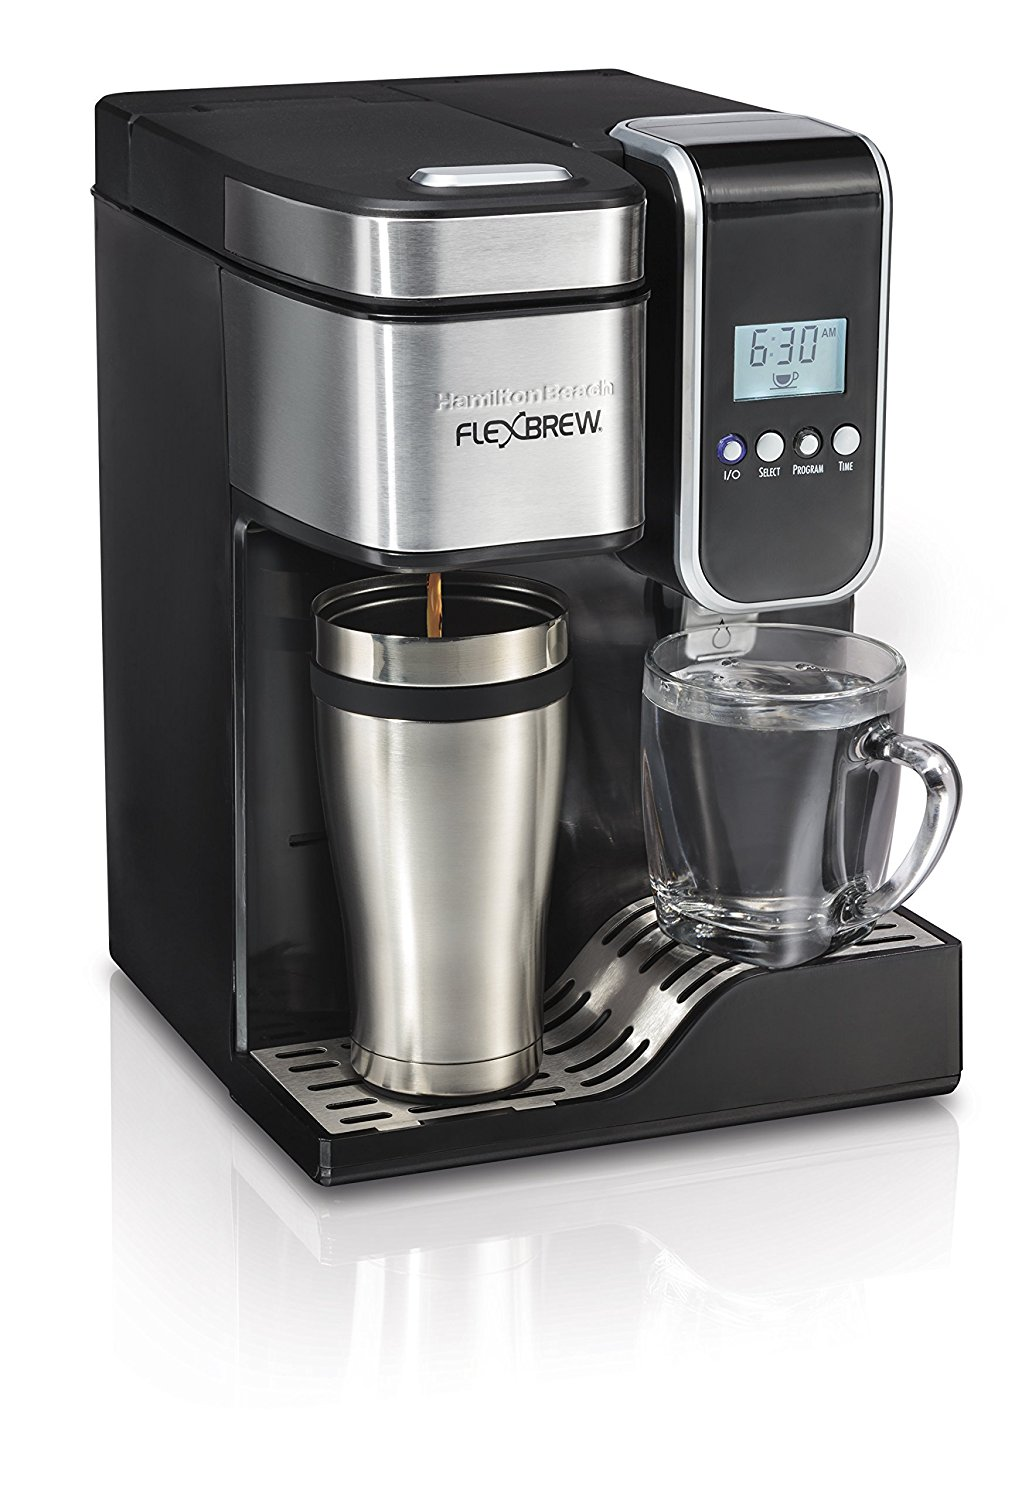 Top 10 Best Coffee Maker For Home And Office